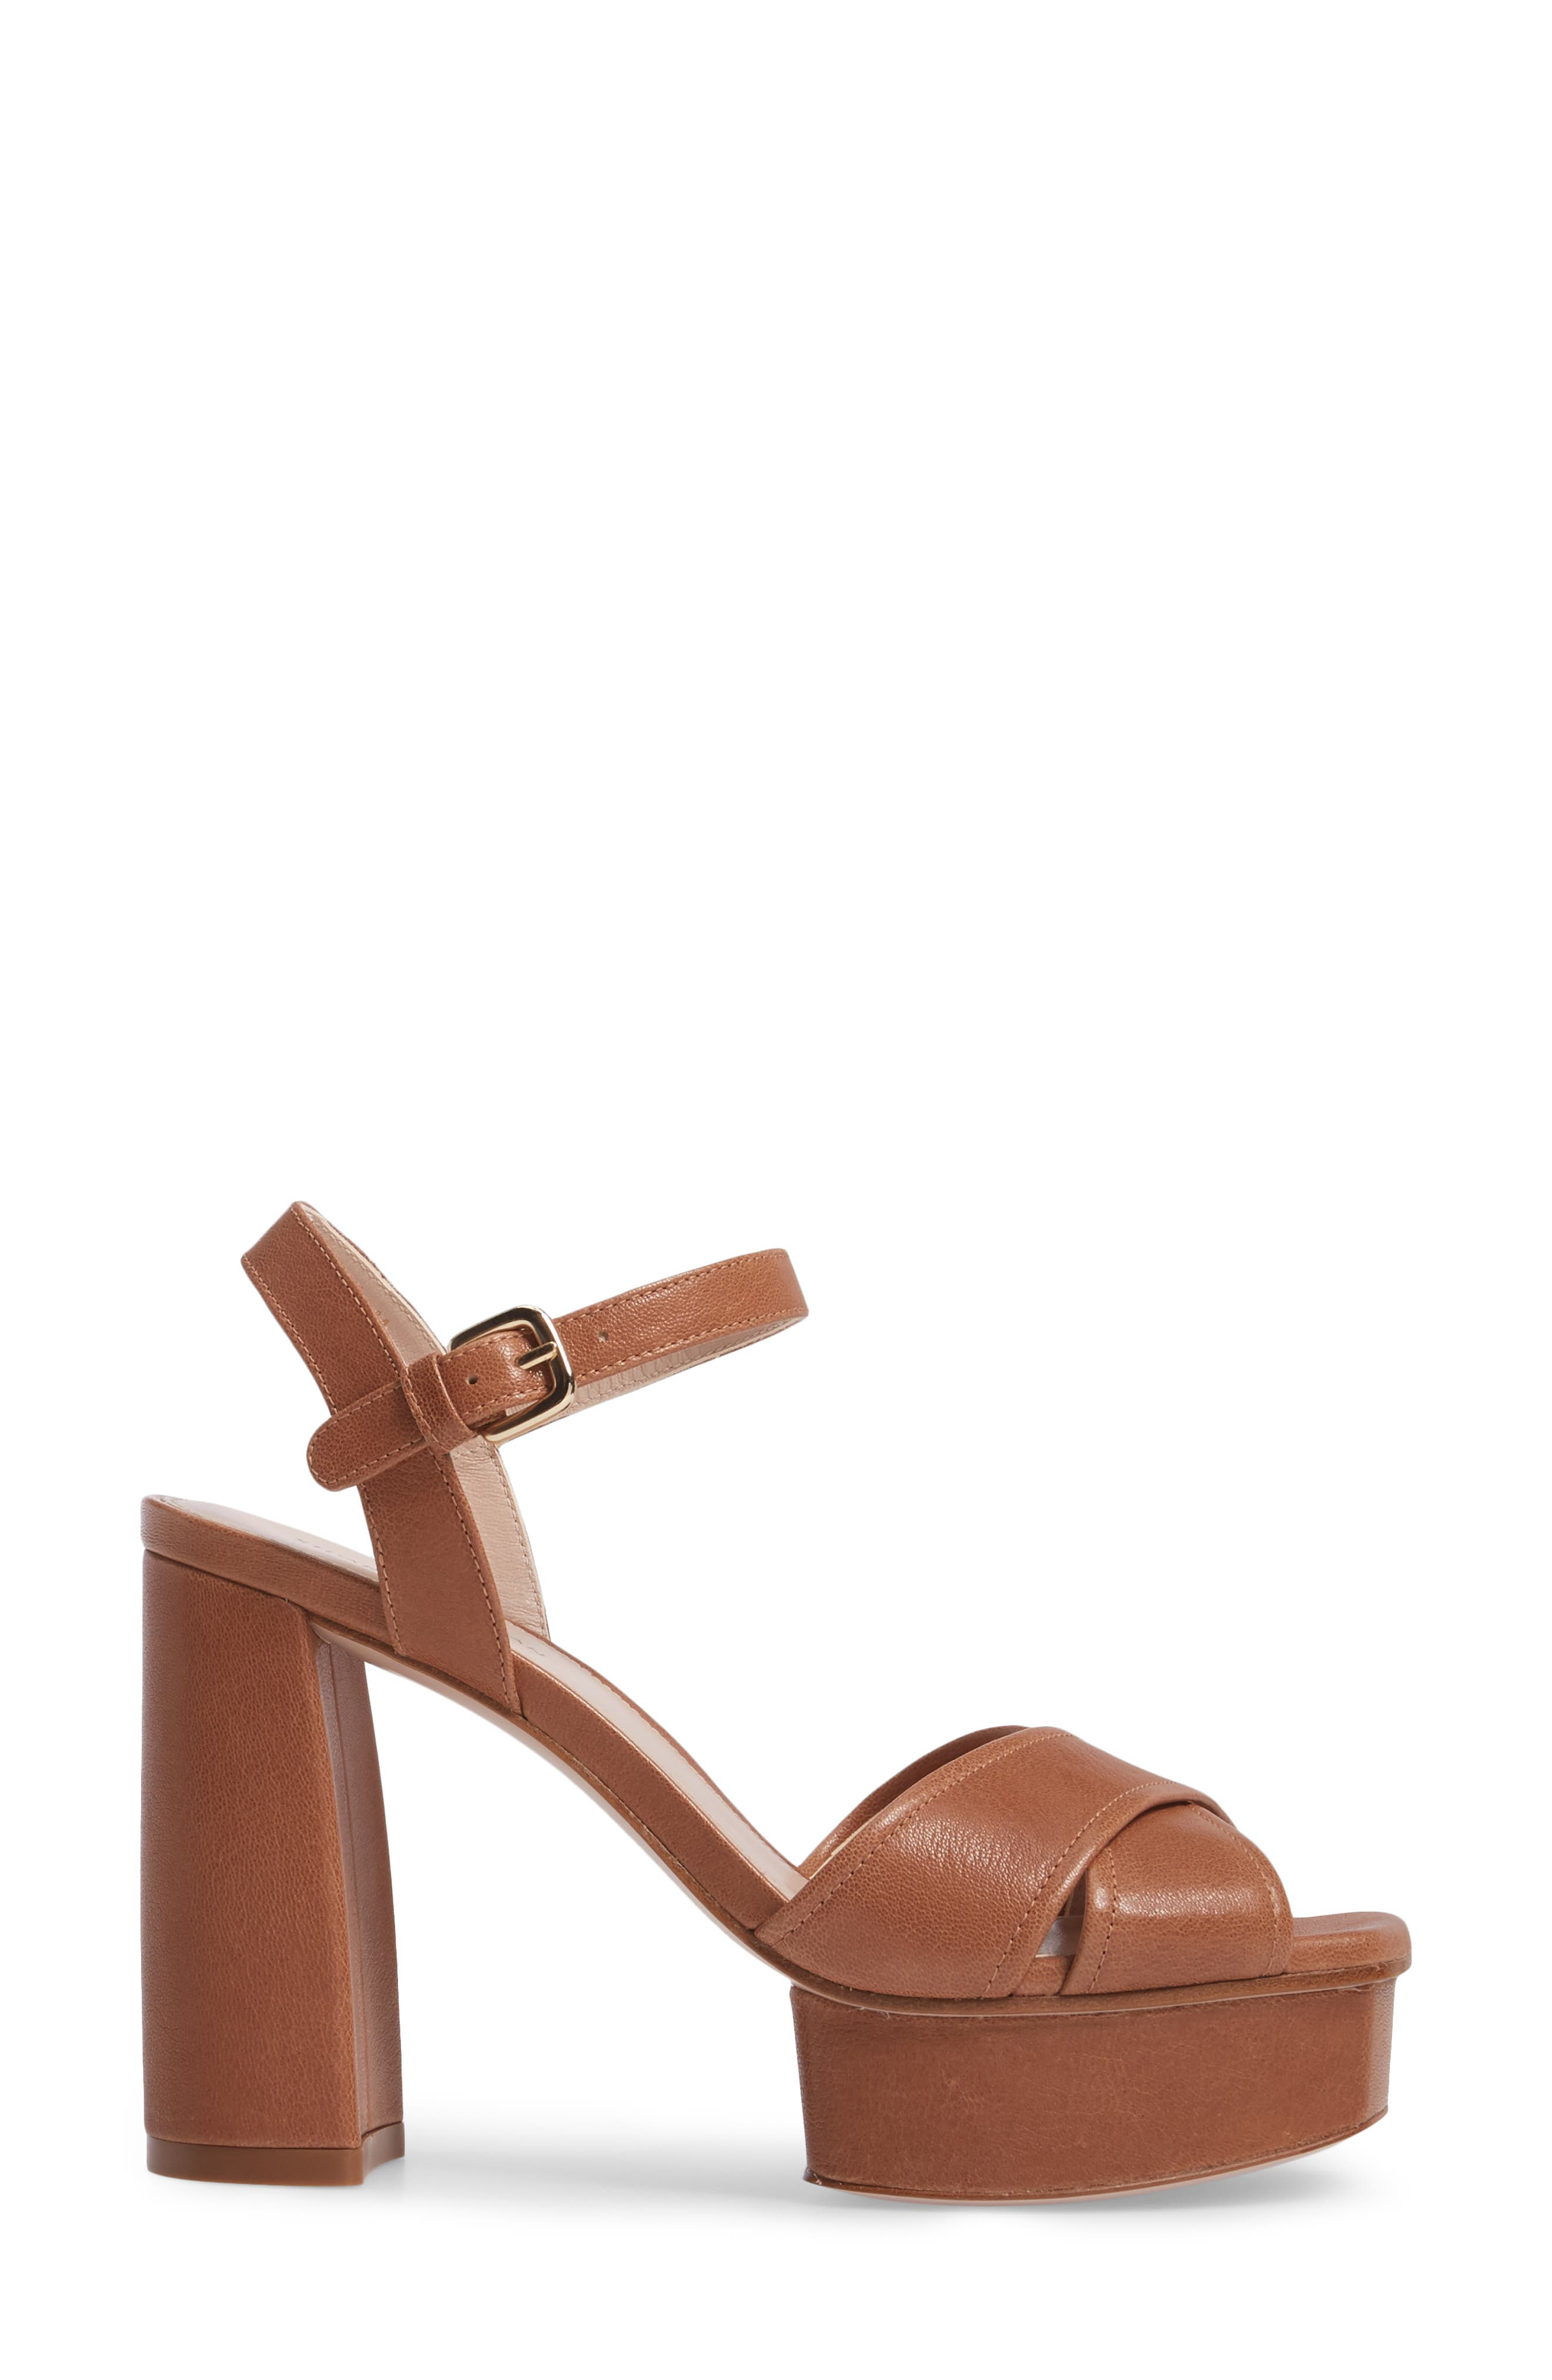 Exposed Platform Sandal,                             Alternate thumbnail 14, color,